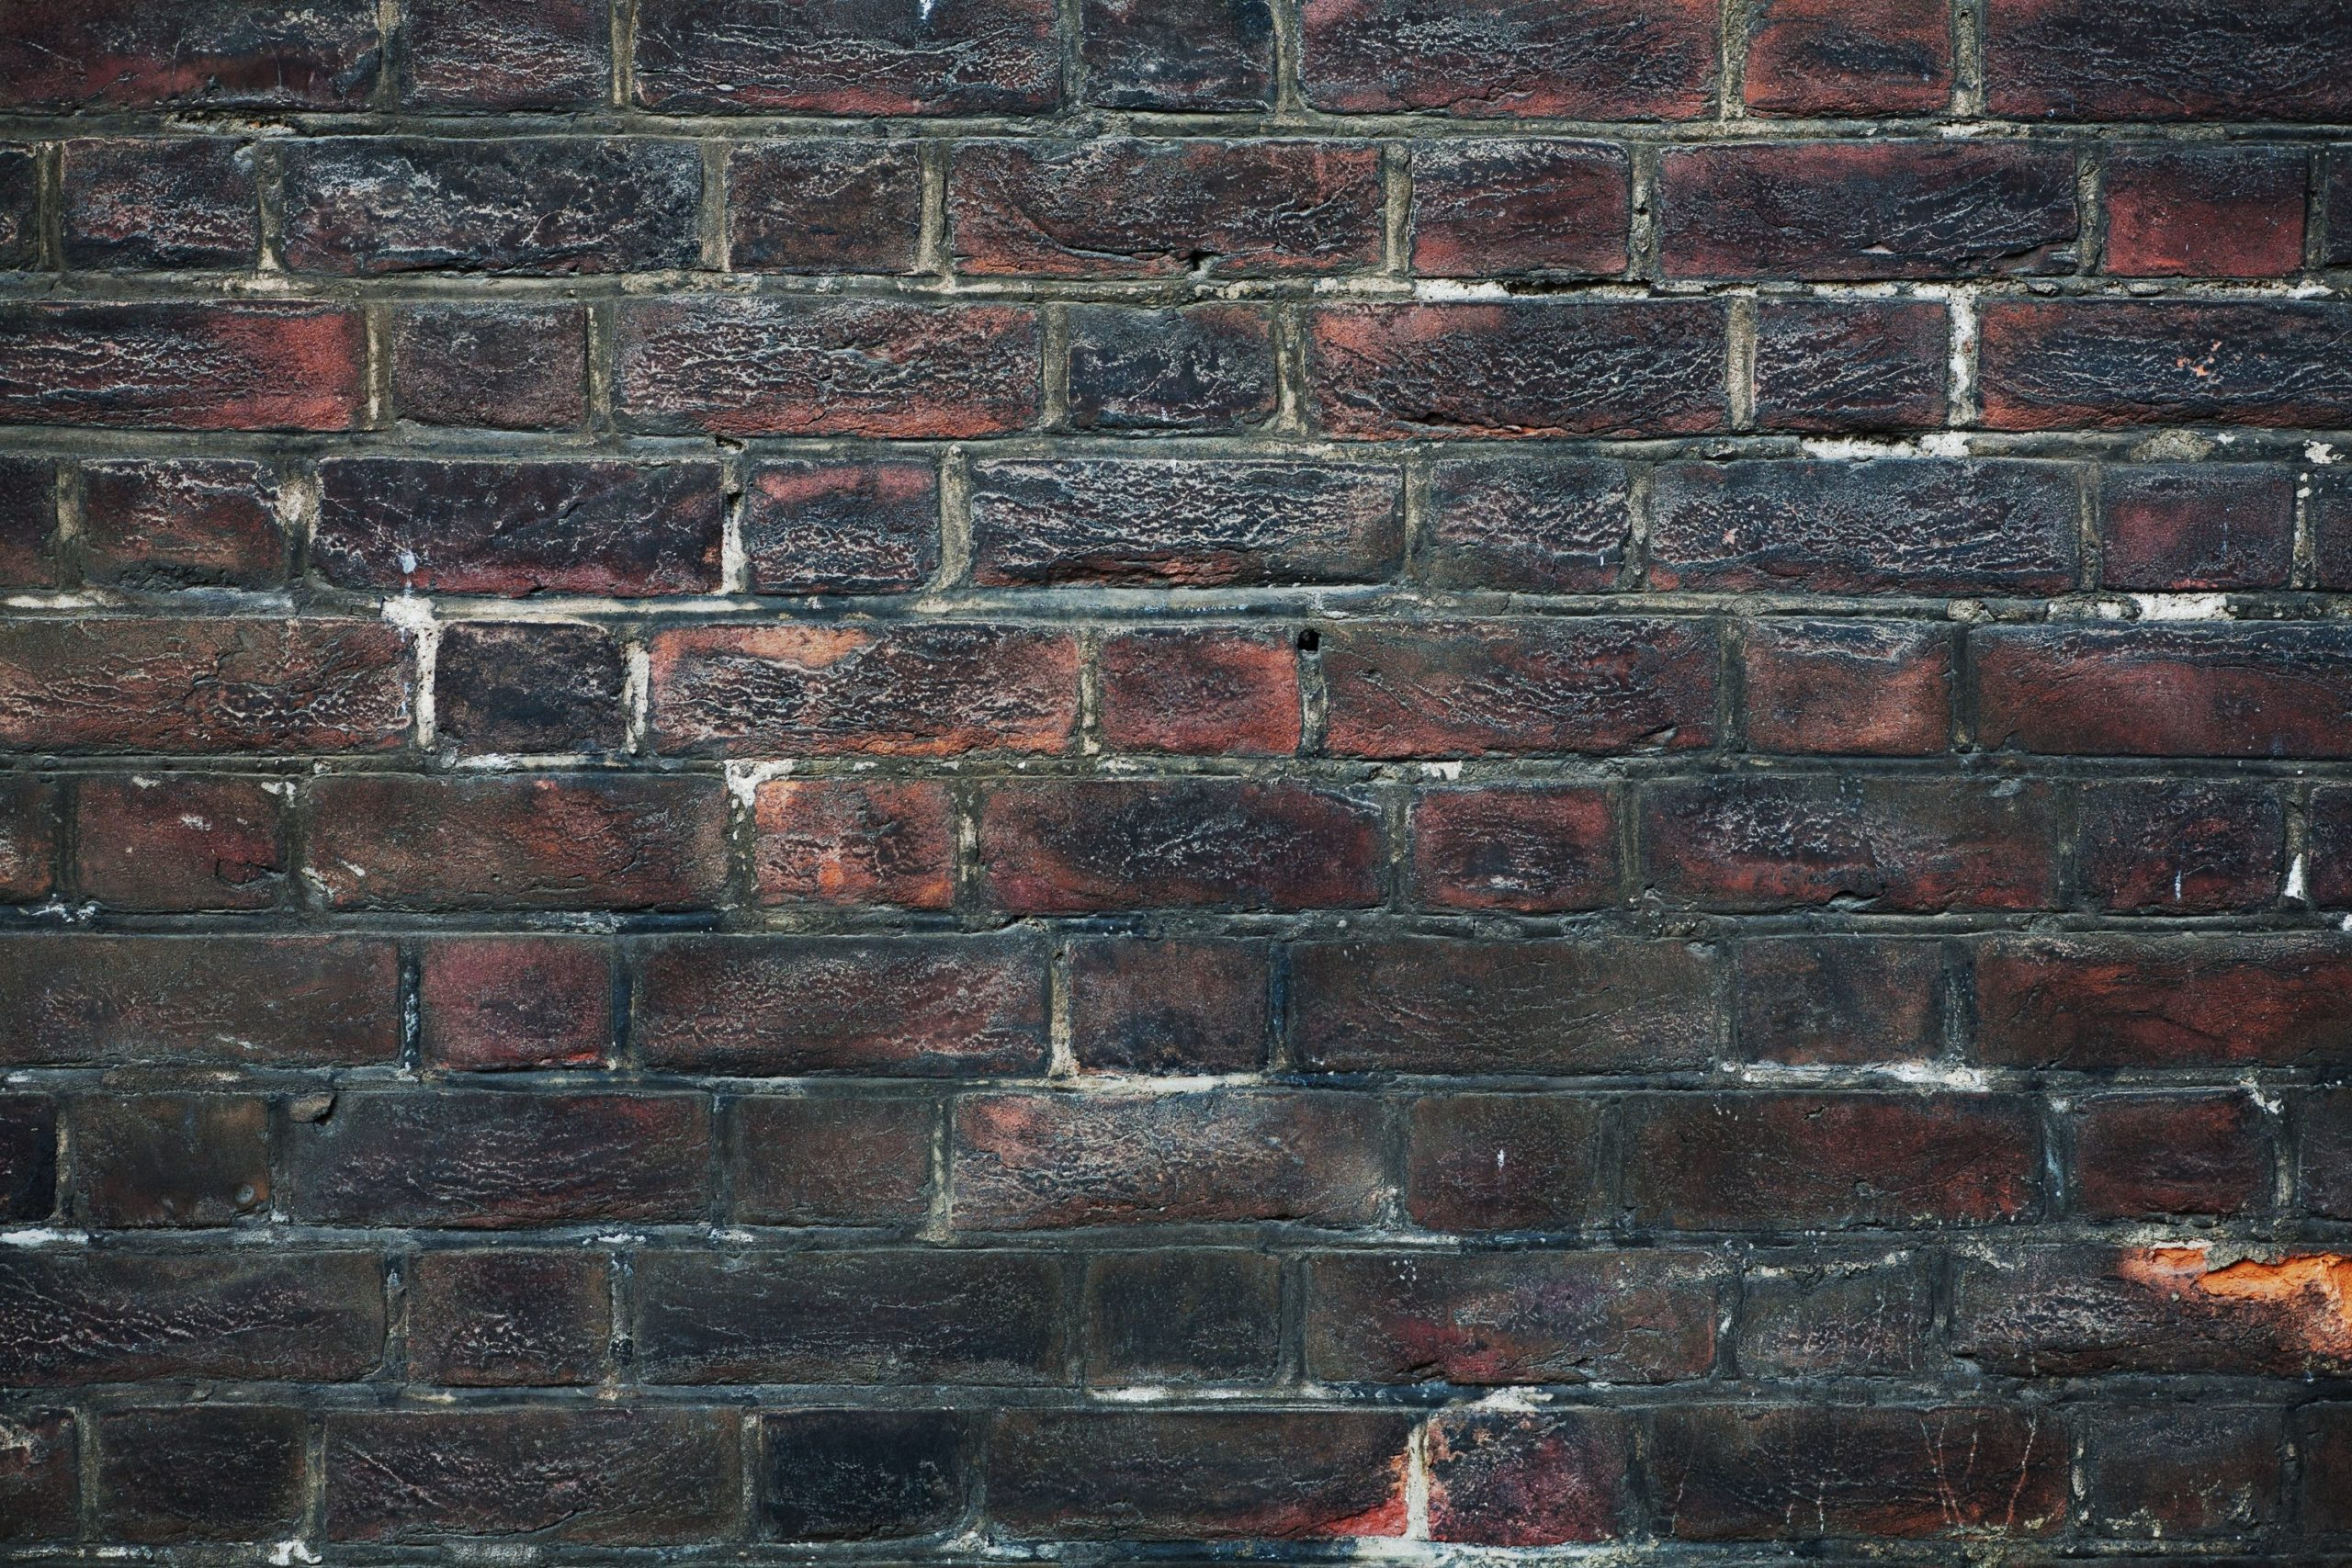 images of brick walls